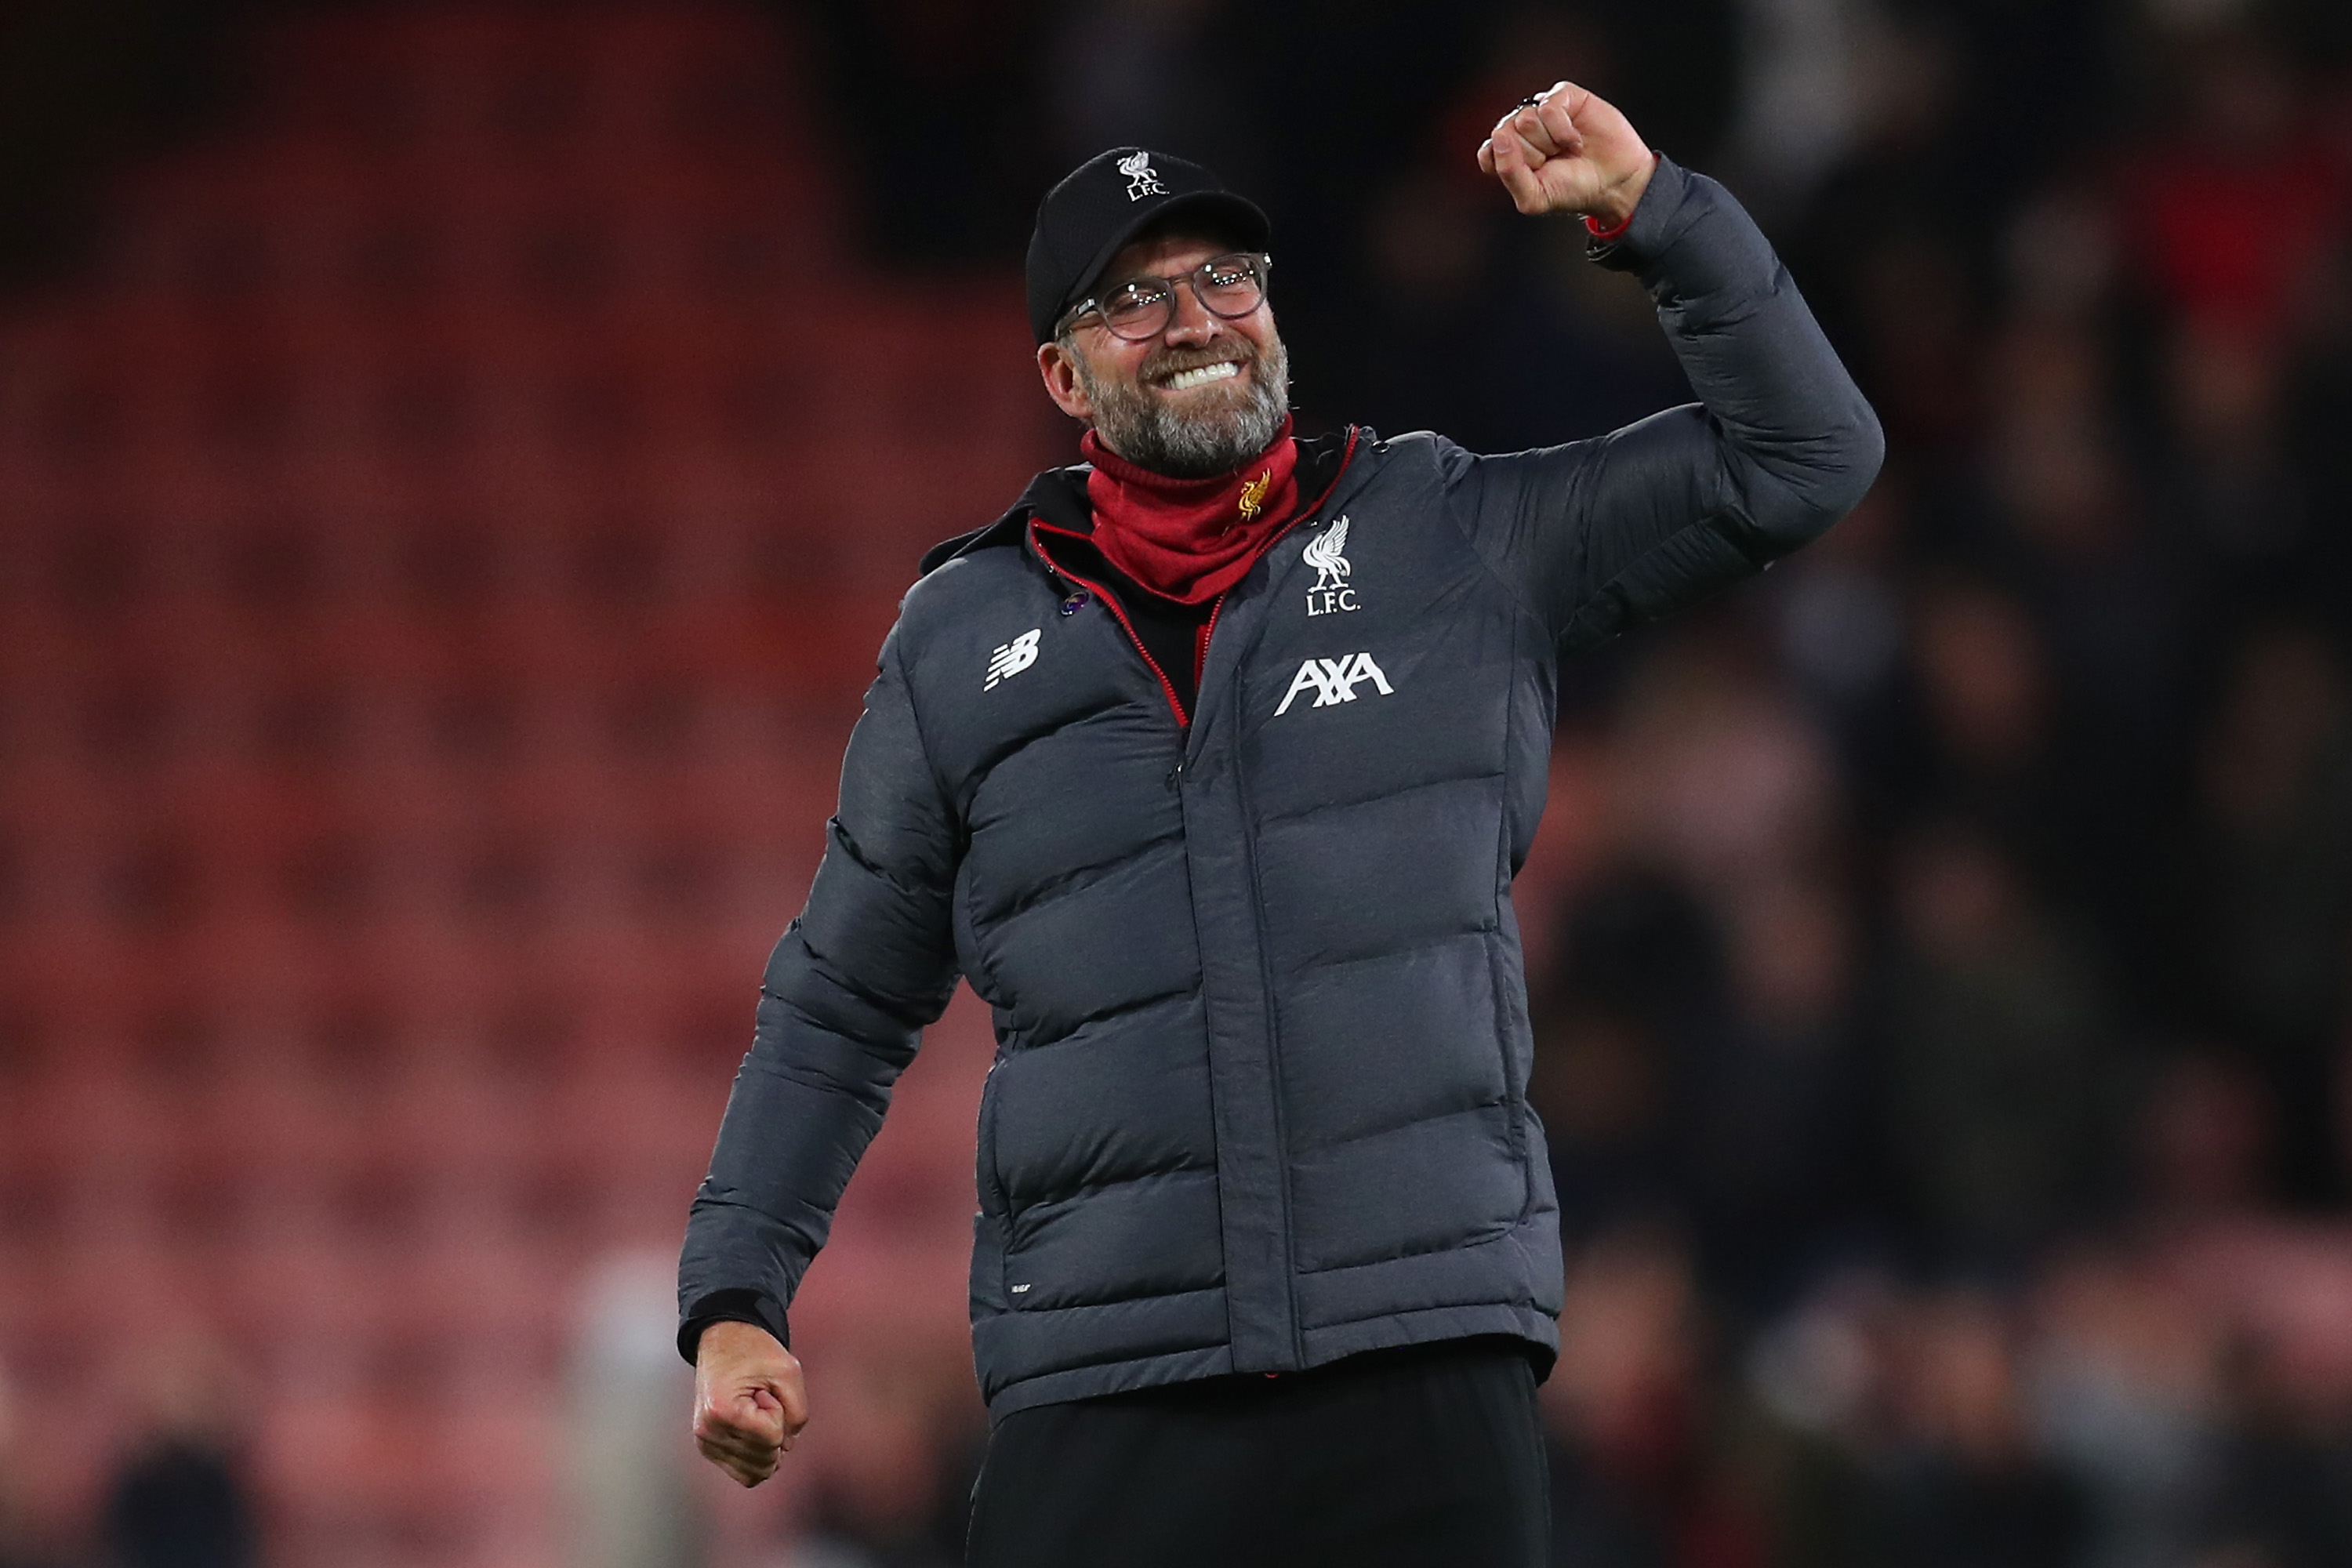 Liverpool clean sheet ensures 'perfect day' for Klopp